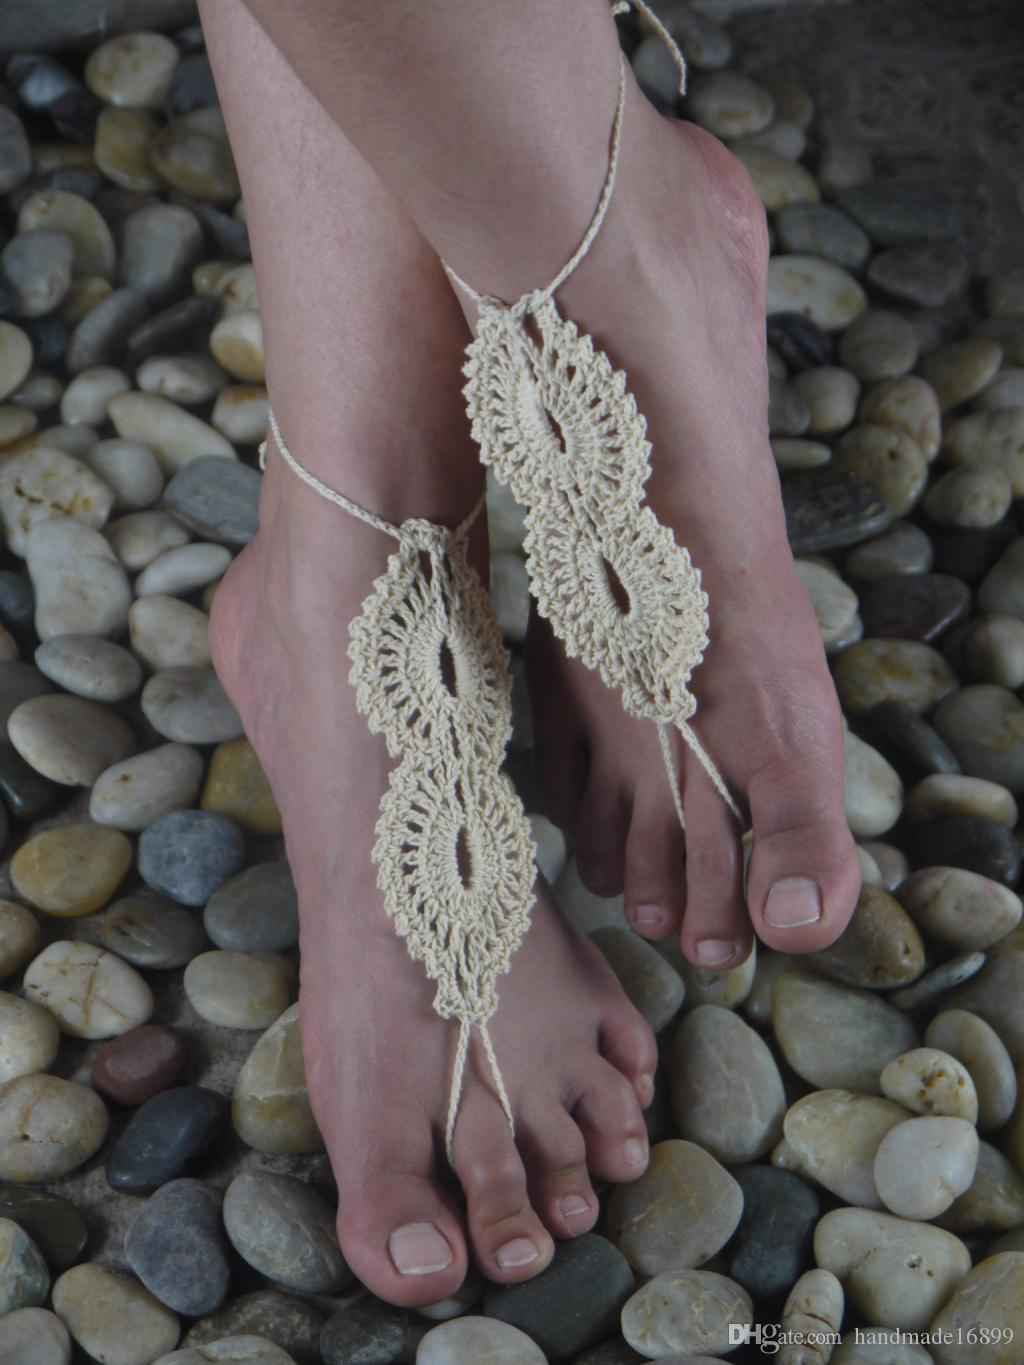 Handmade Beige crochet barefoot sandals /Nude shoes /Bridesmaid accessory /yoga shoes/ lace shoes wedding accessory